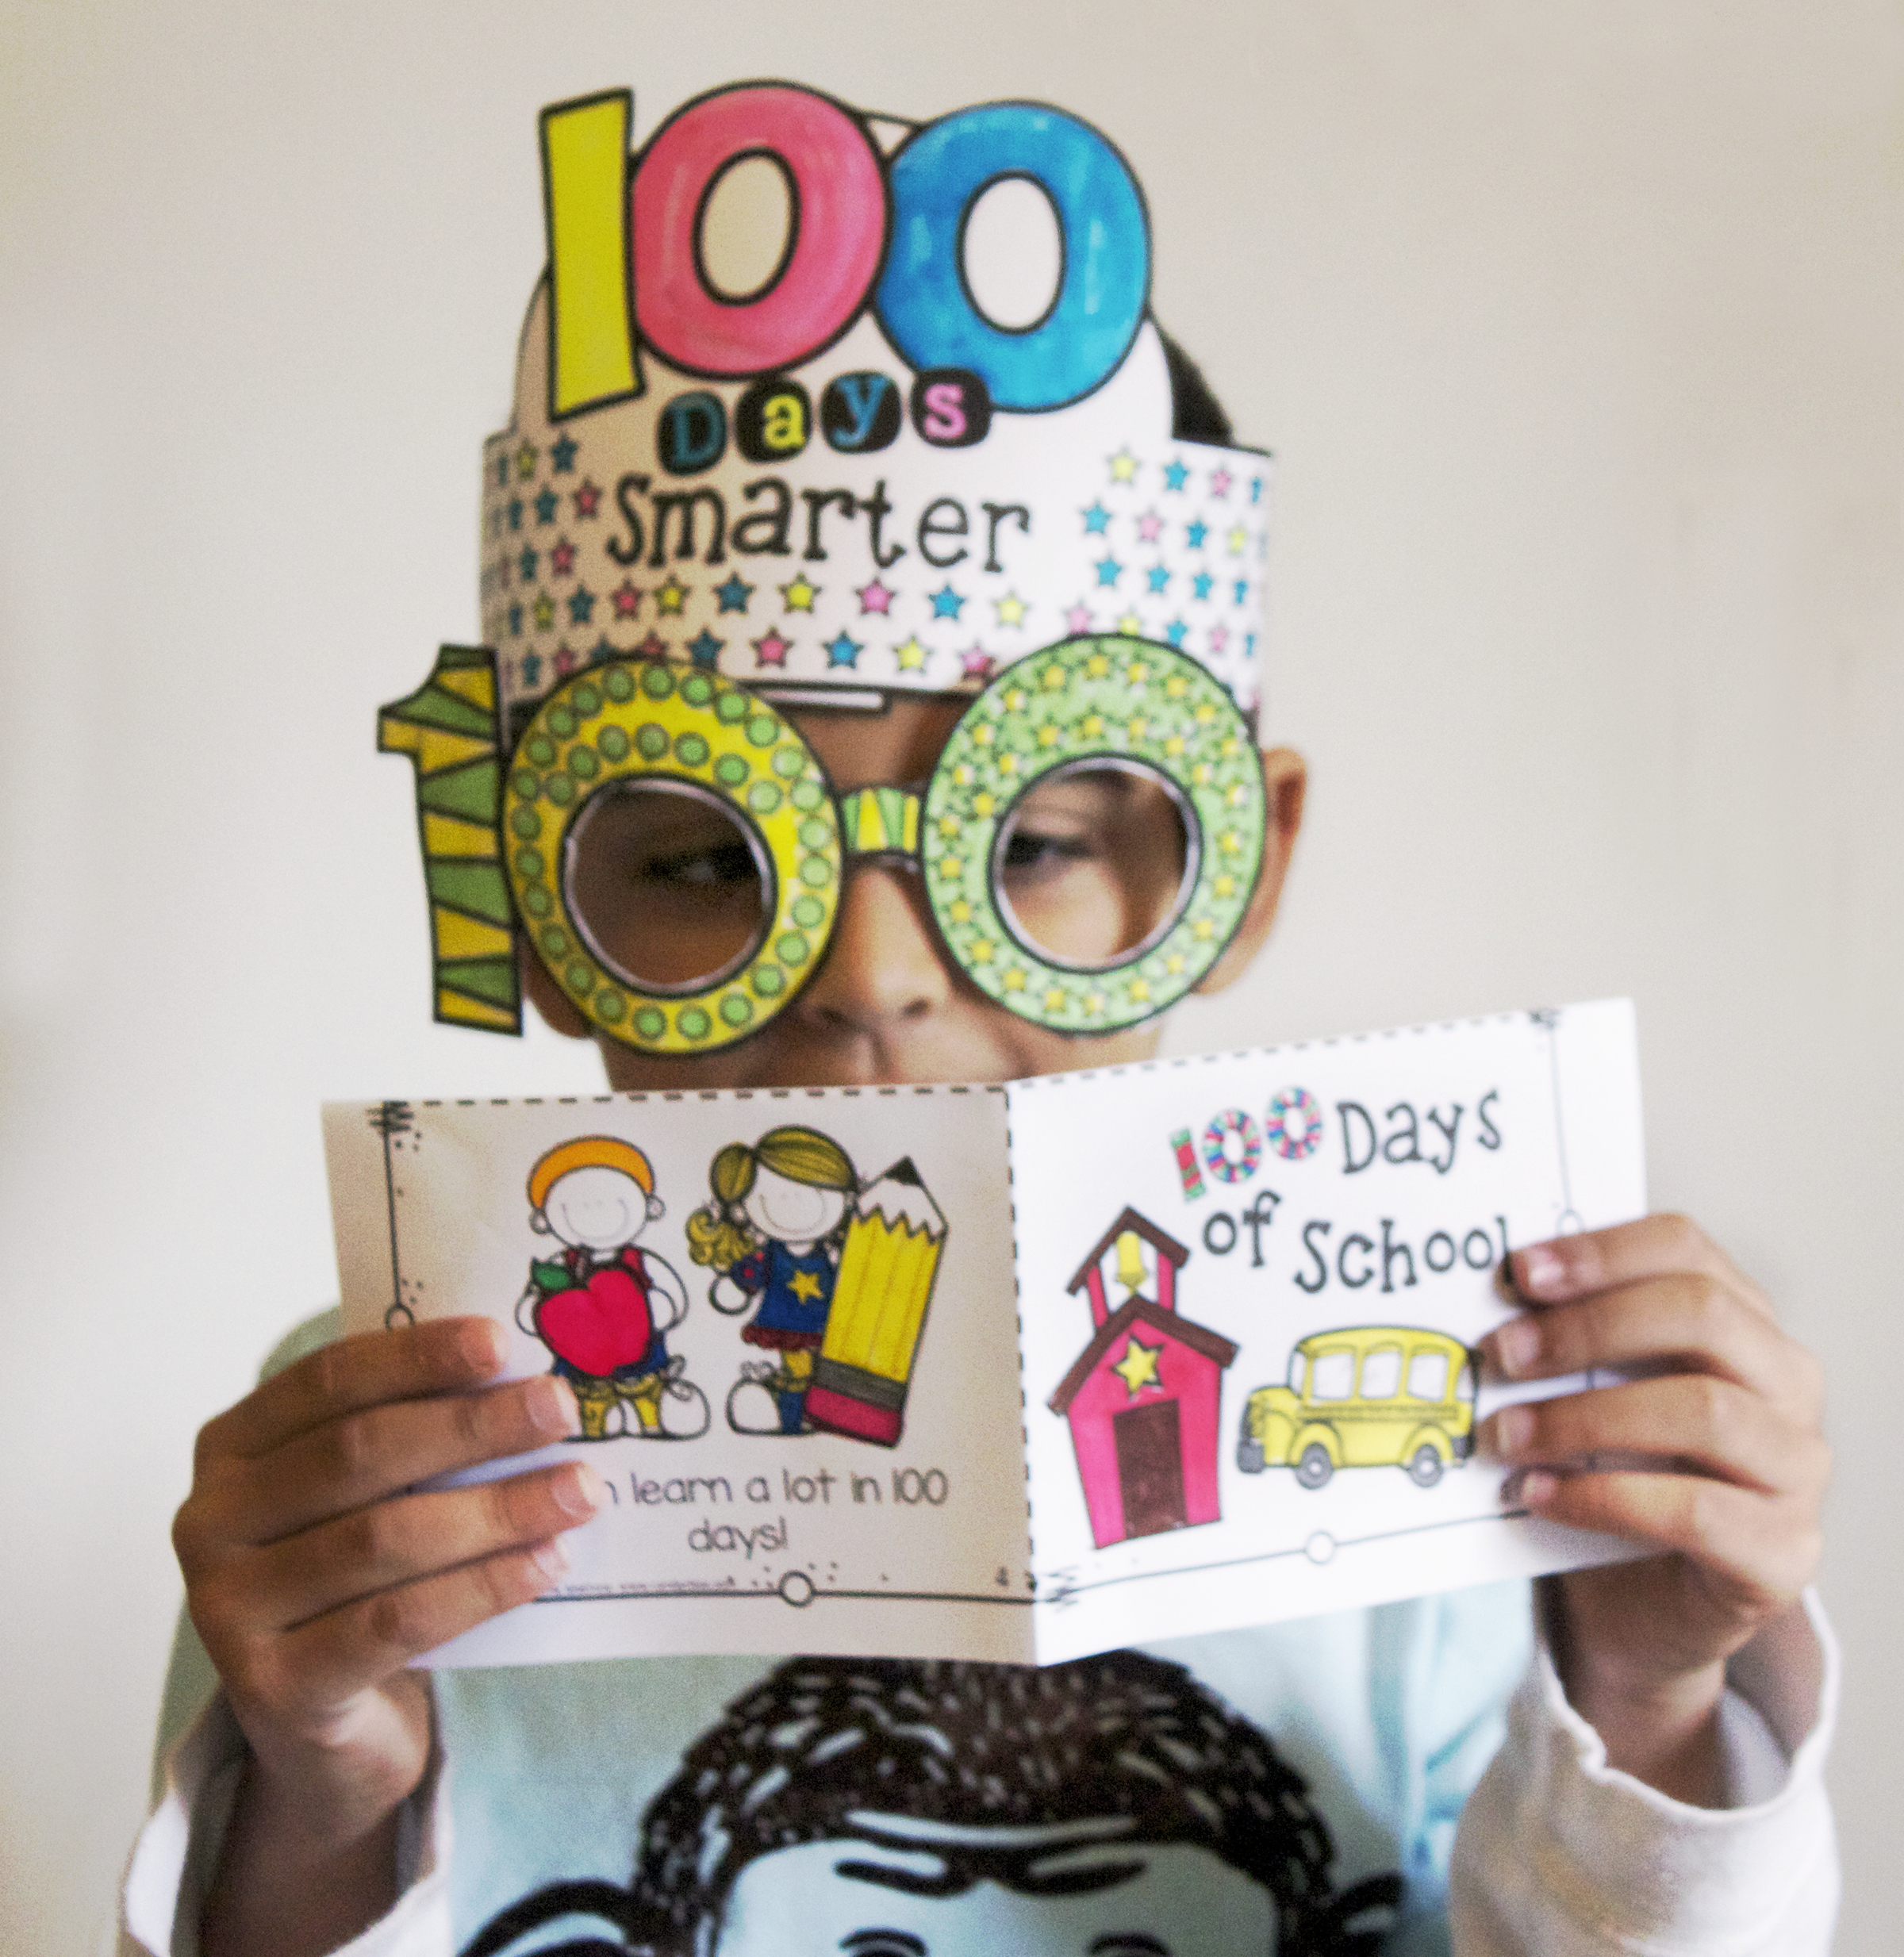 100Th Day Of School….let's Celebrate! - The Candy Class - 100Th Day Of School Printable Glasses Free